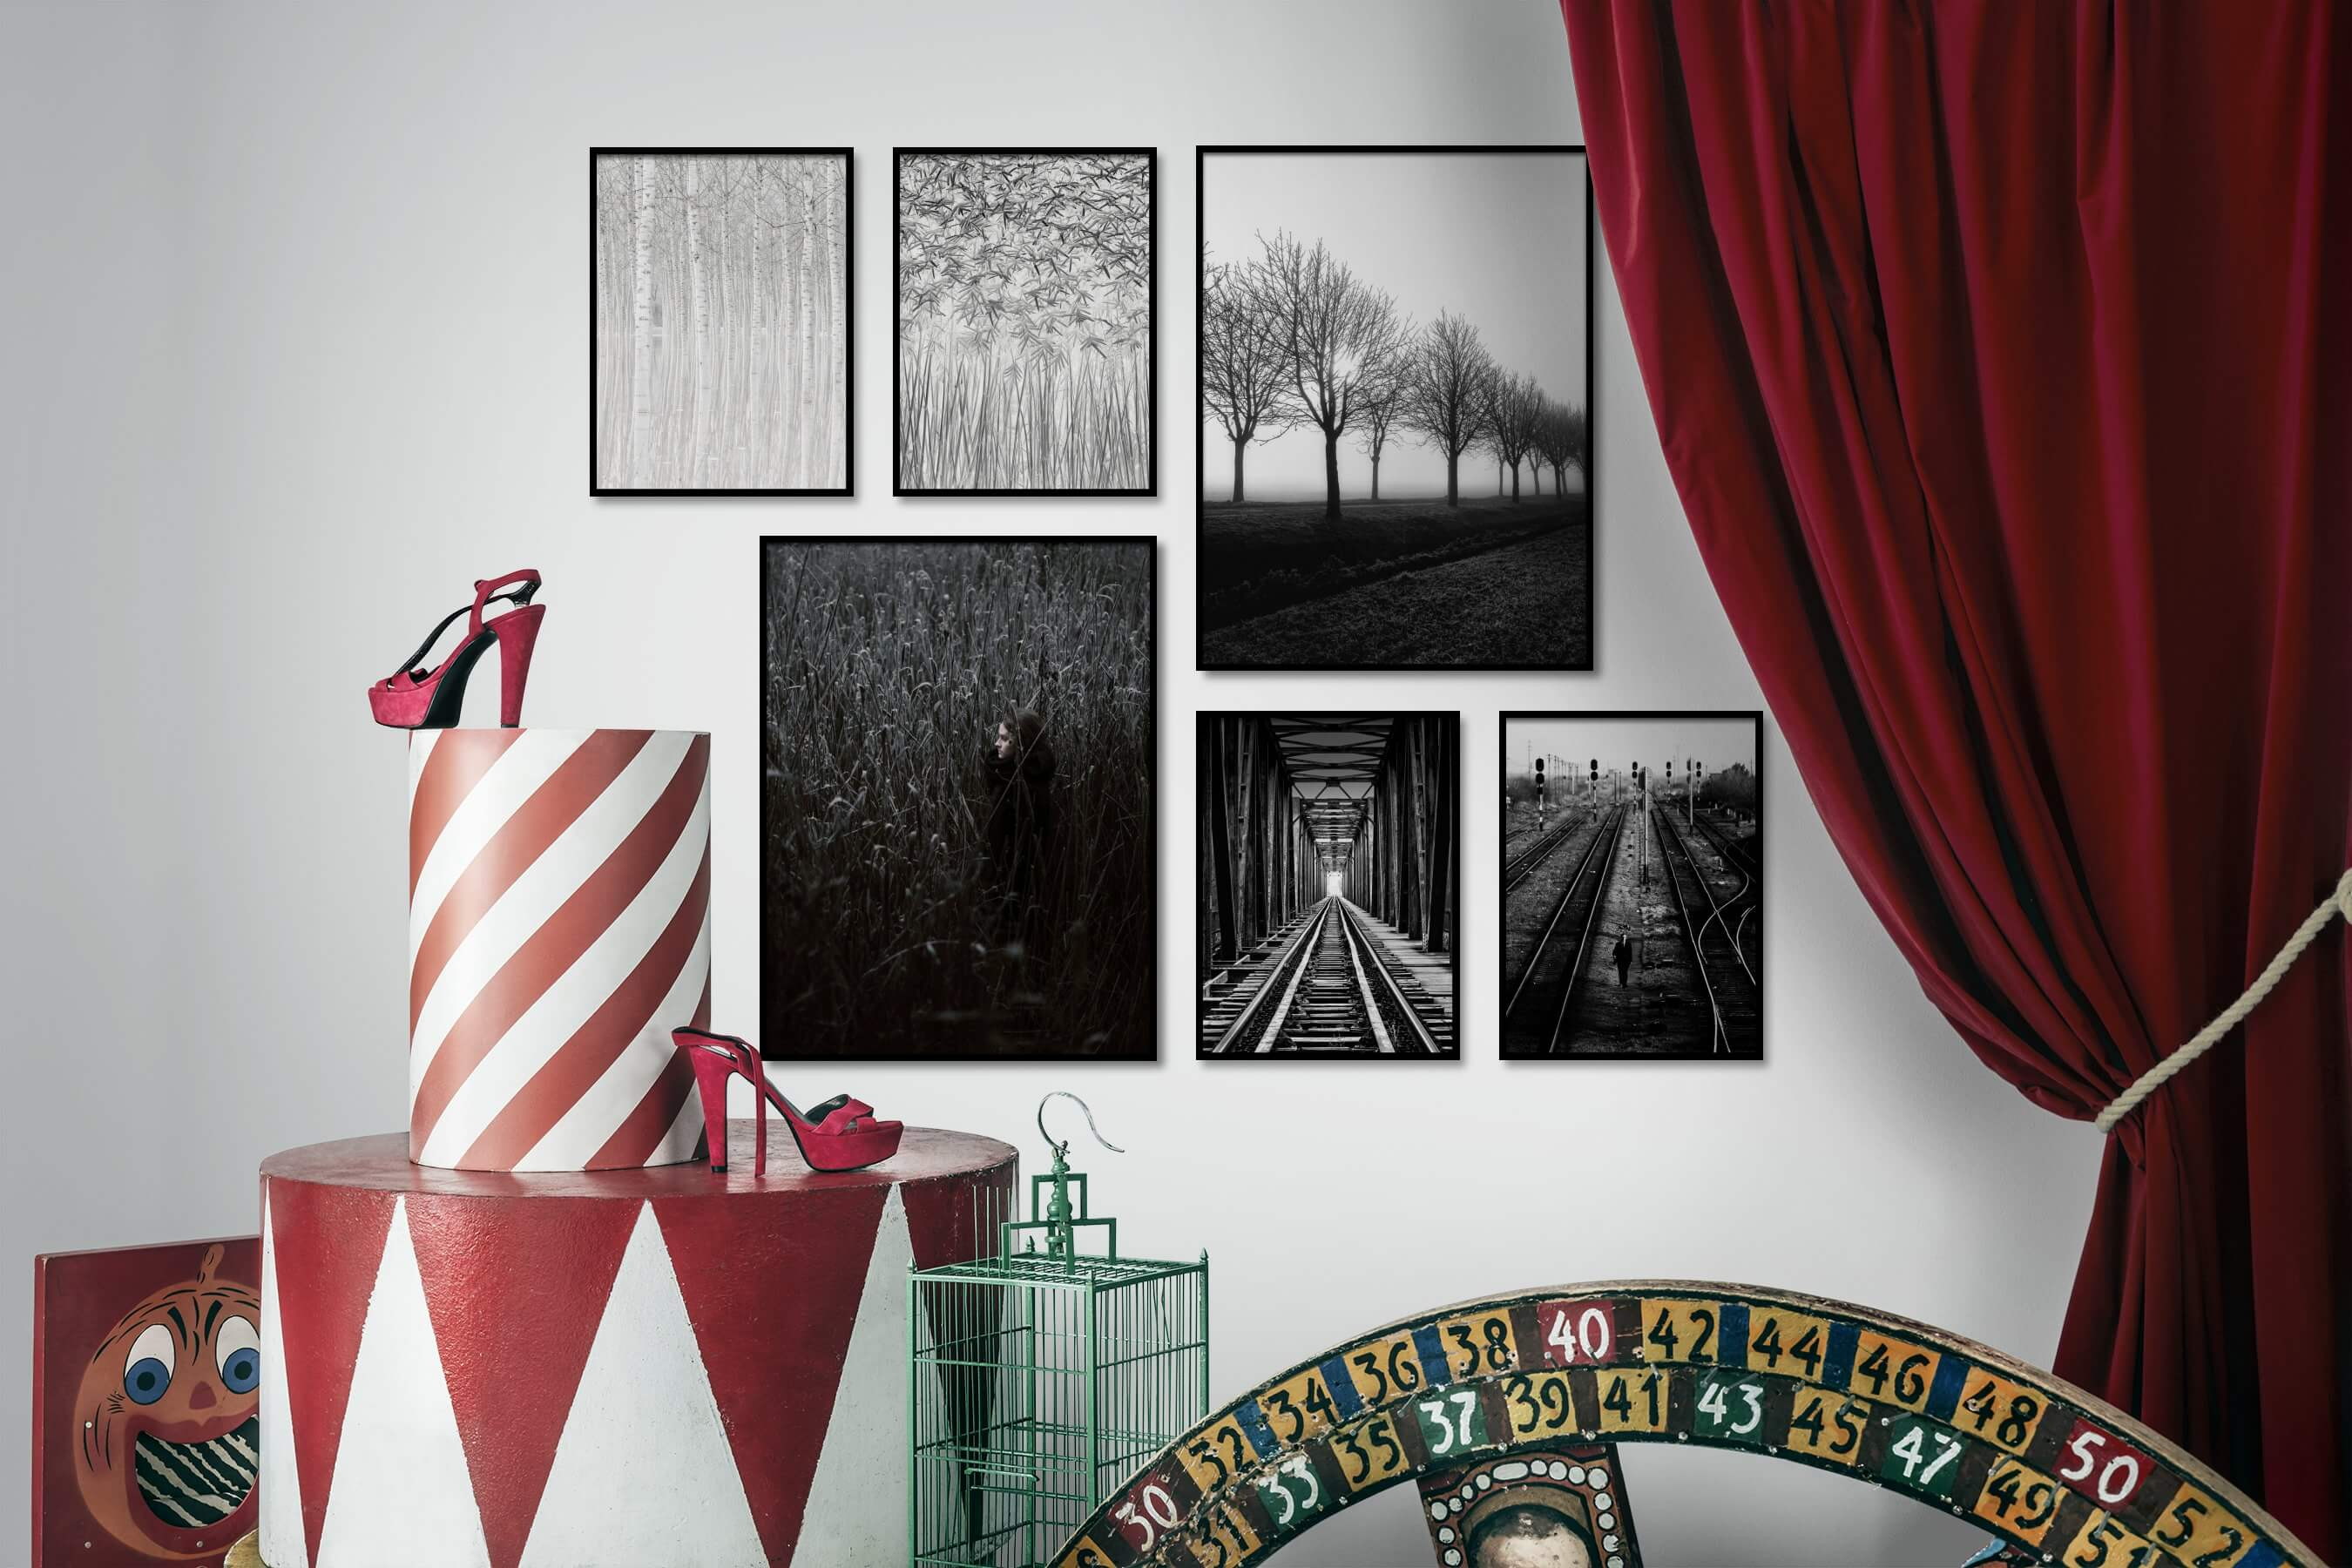 Gallery wall idea with six framed pictures arranged on a wall depicting Black & White, For the Moderate, Nature, For the Maximalist, and Country Life